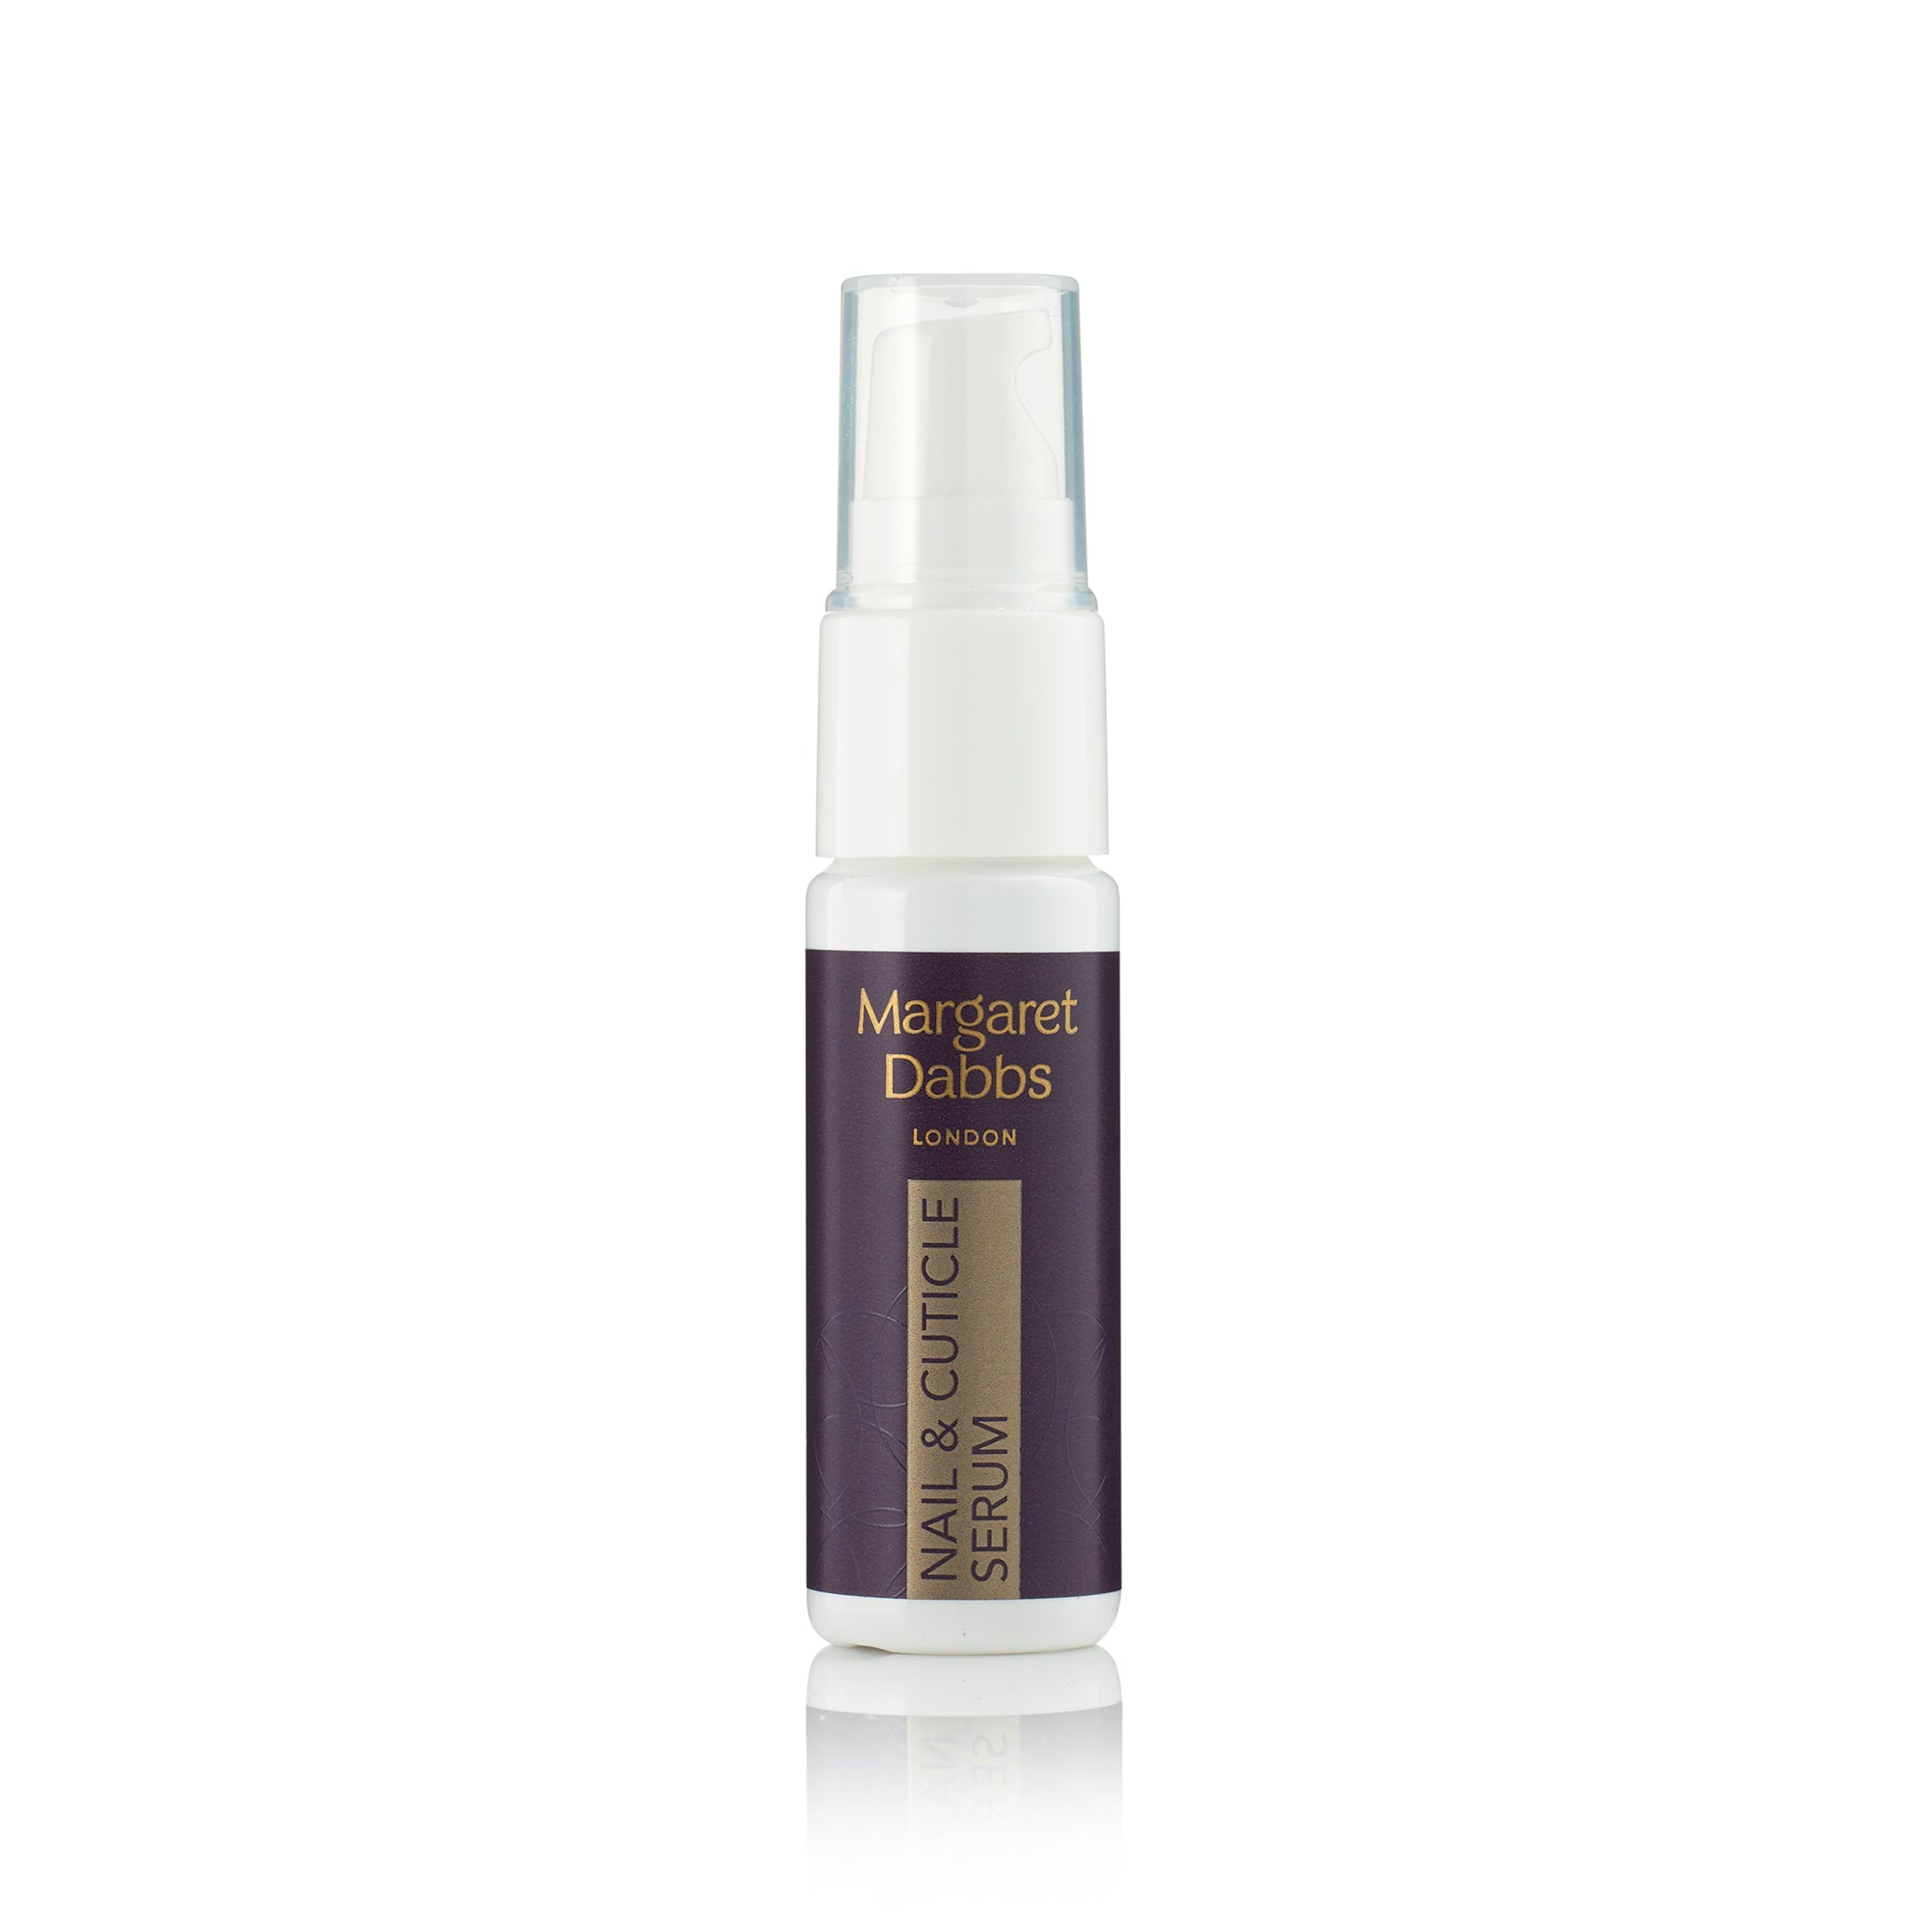 Delaire Graff Estate Spa, Margaret Dabbs Nourishing Nail & Cuticle Serum